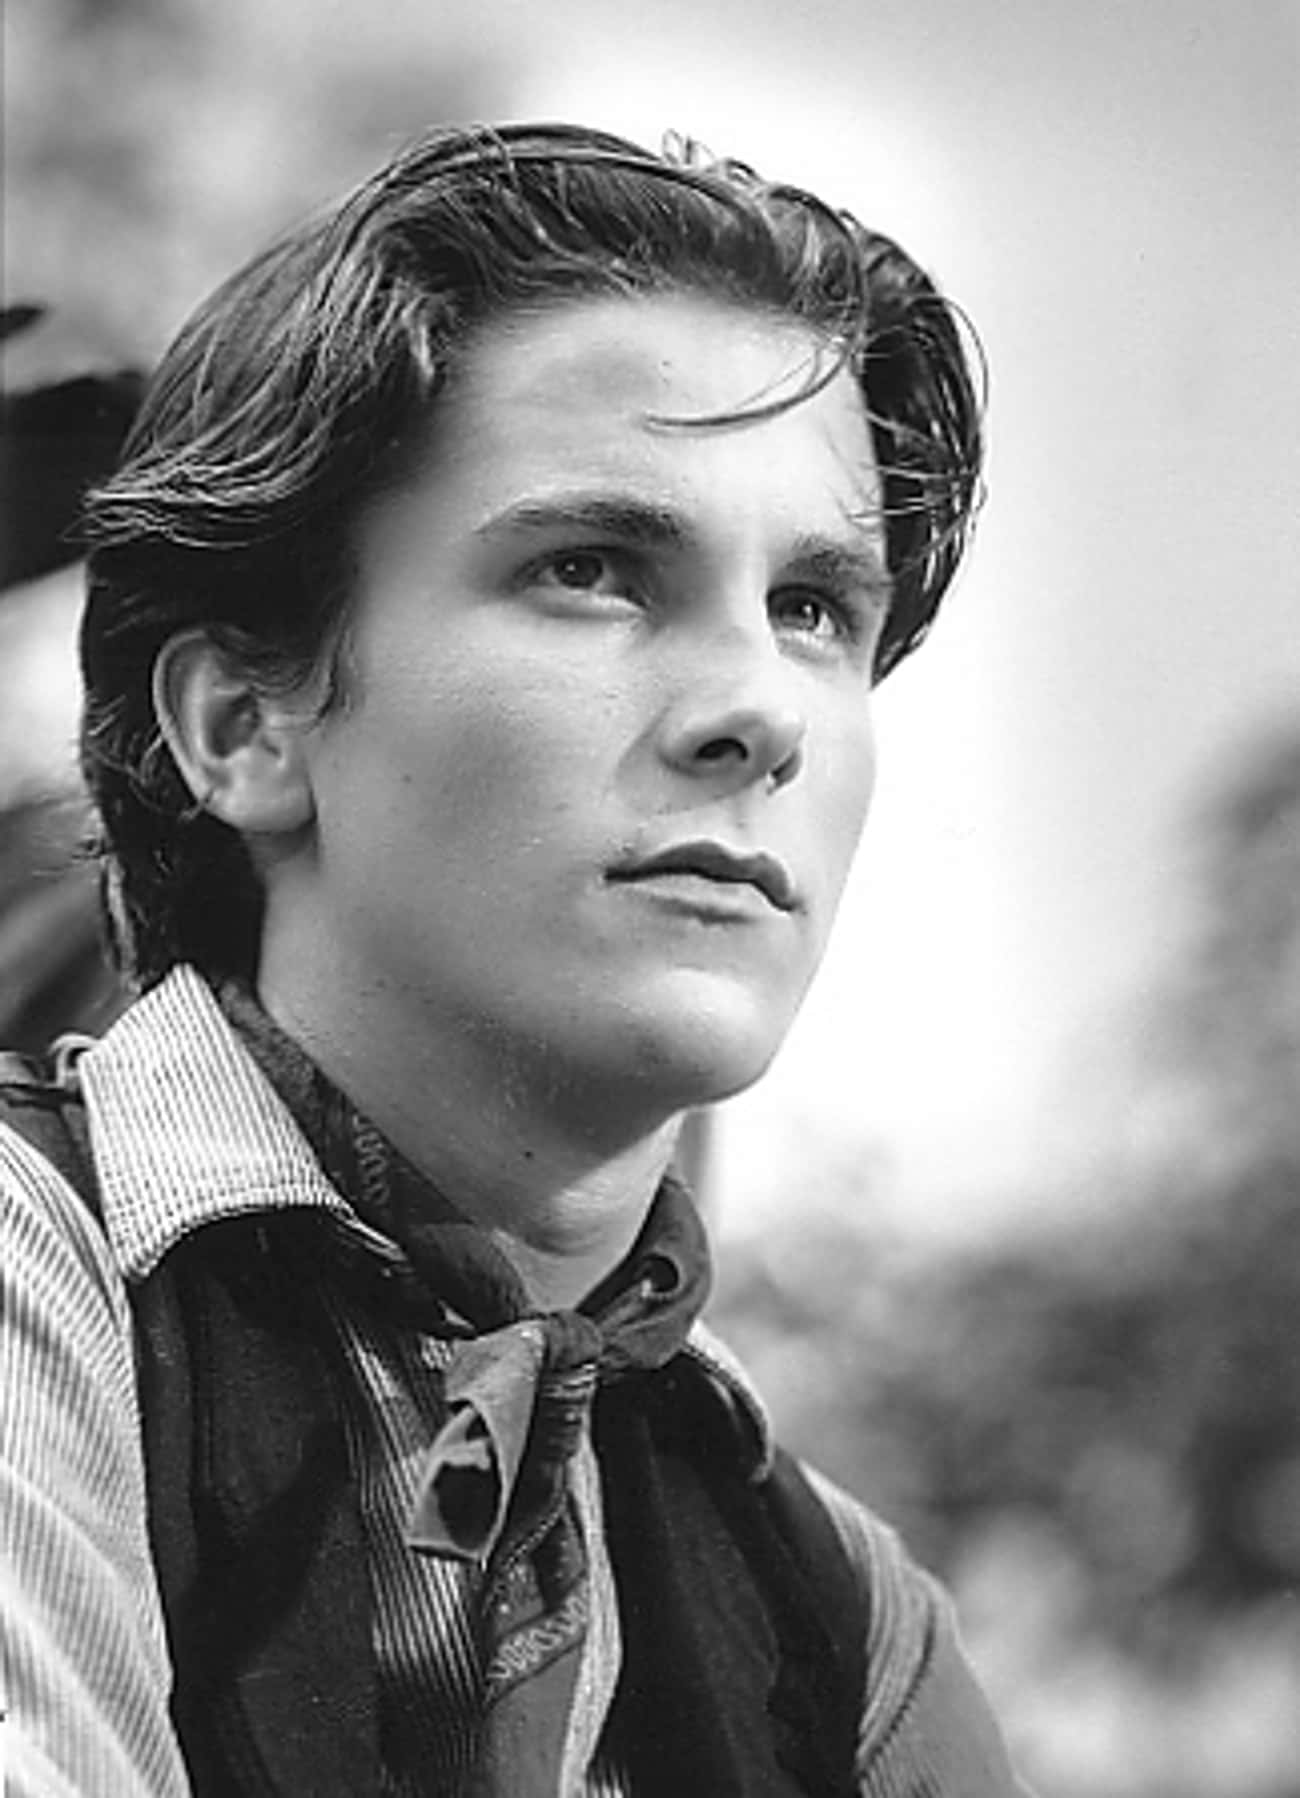 Young Christian Bale as Teenag is listed (or ranked) 1 on the list 20 Pictures of Young Christian Bale